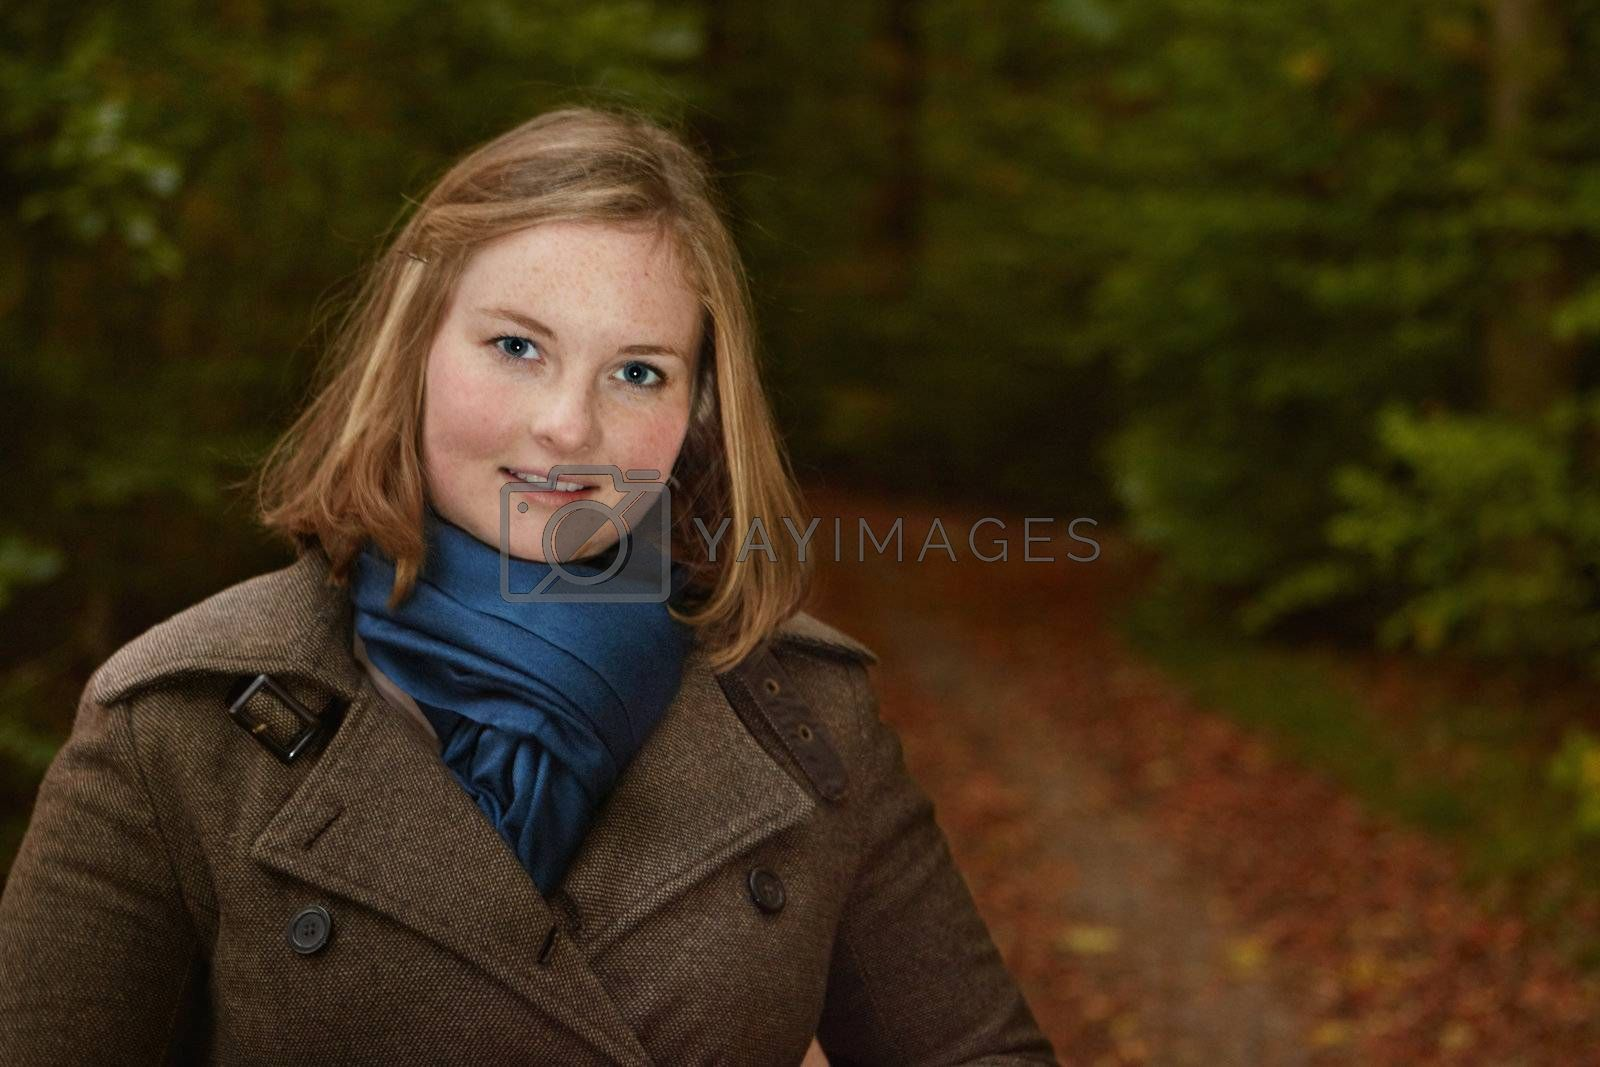 Royalty free image of Freindly young woman standing by a forest path by FreedomImage